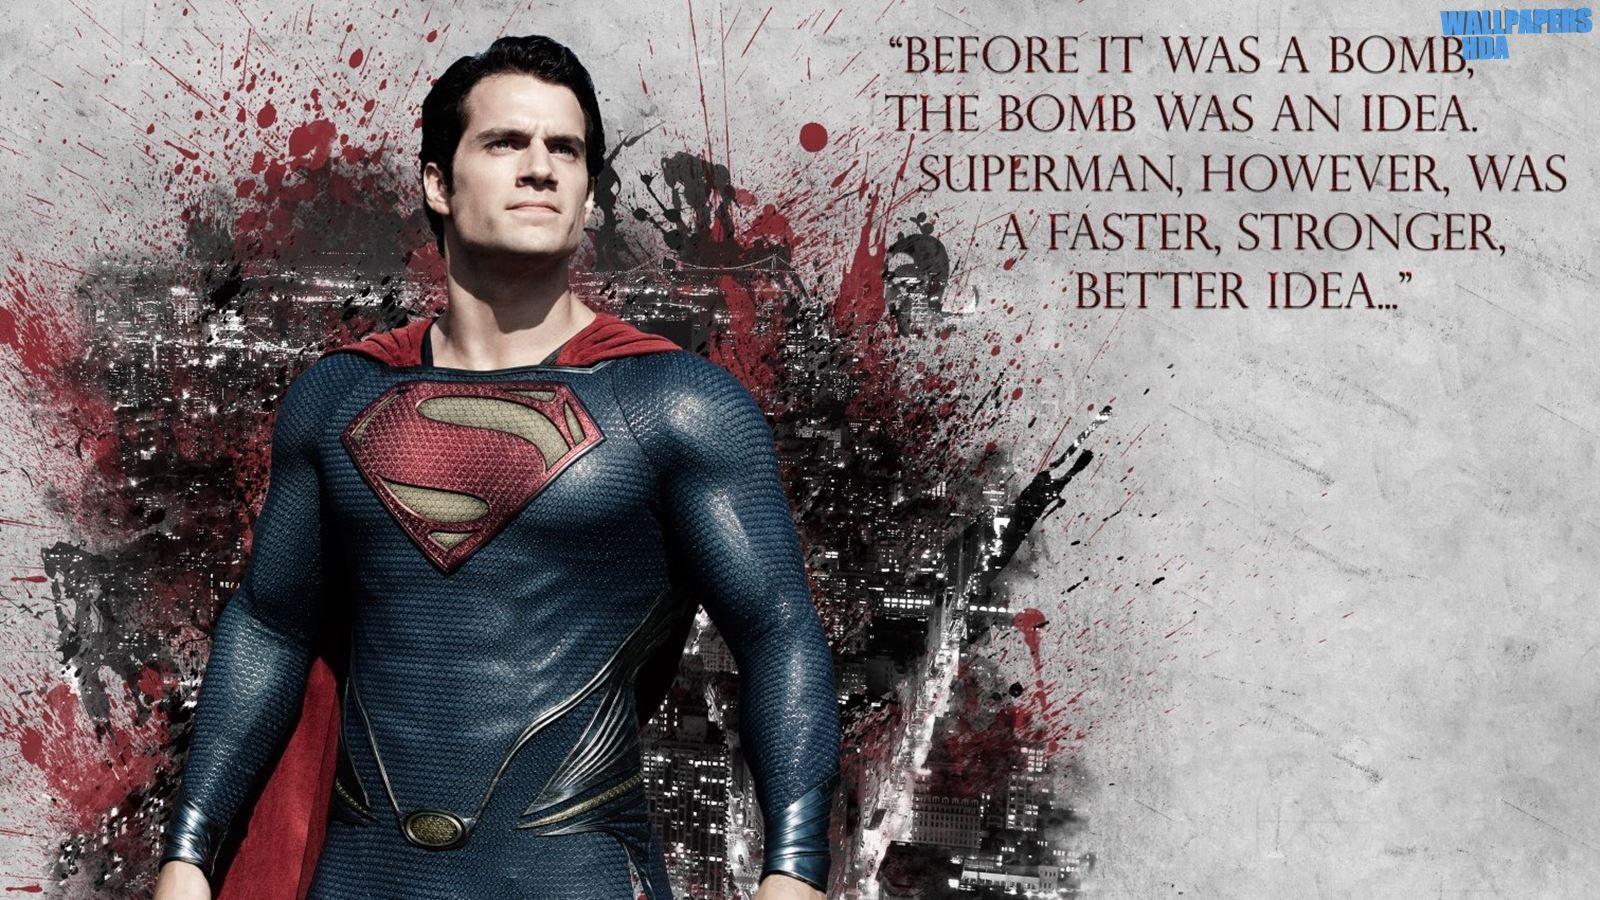 Superman 4 Wallpaper 1600x900 July 24, 2016 Posted by Wallpapers HDa